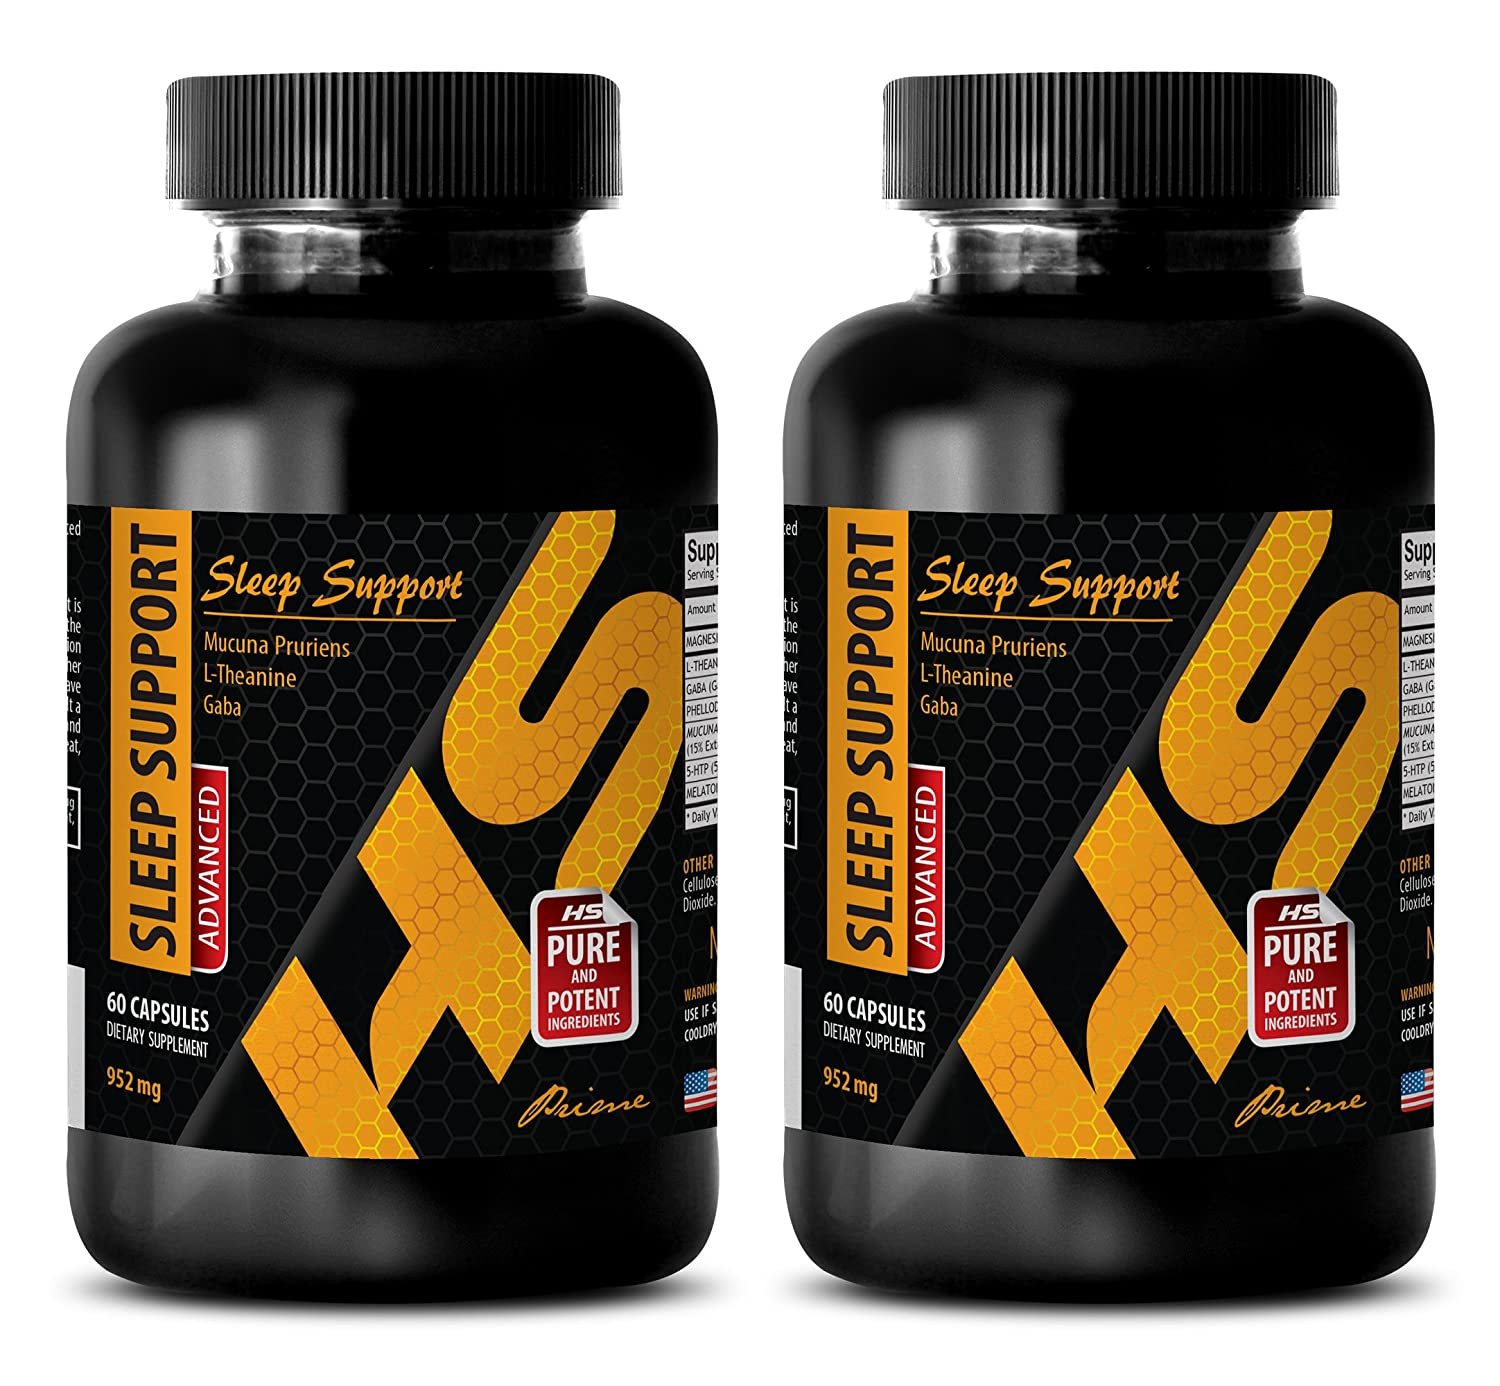 Amazon.com: testosterone booster supplement - SLEEP SUPPORT - ADVANCED BLEND 952Mg - melatonin capsules - 2 Bottles (120 Capsules): Health & Personal Care